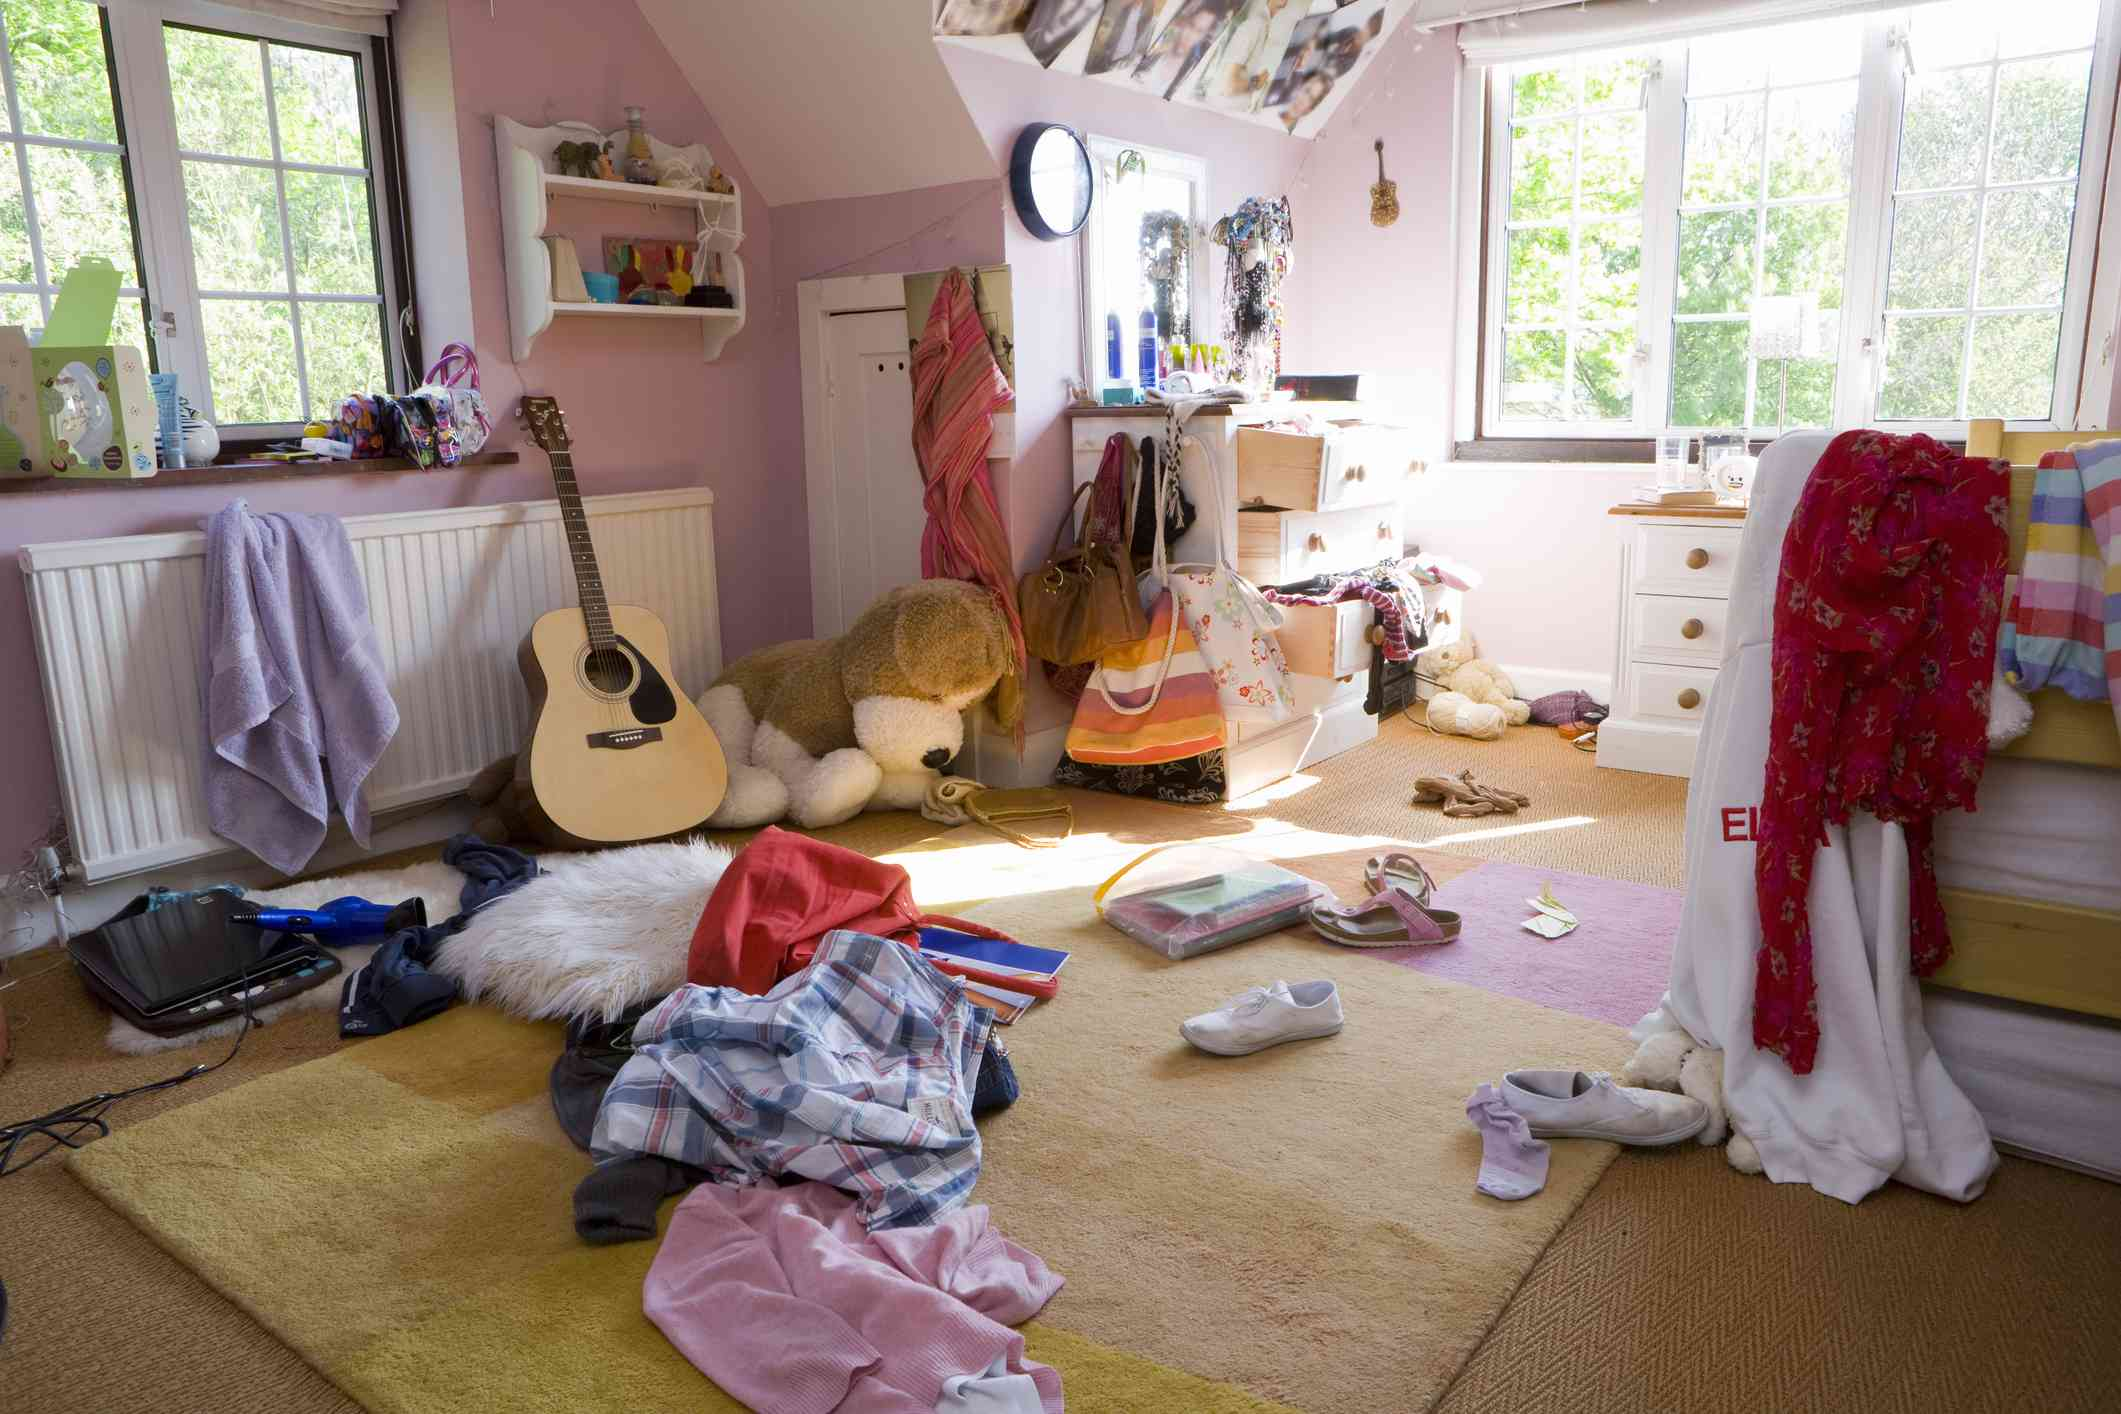 Psychology of a messy room